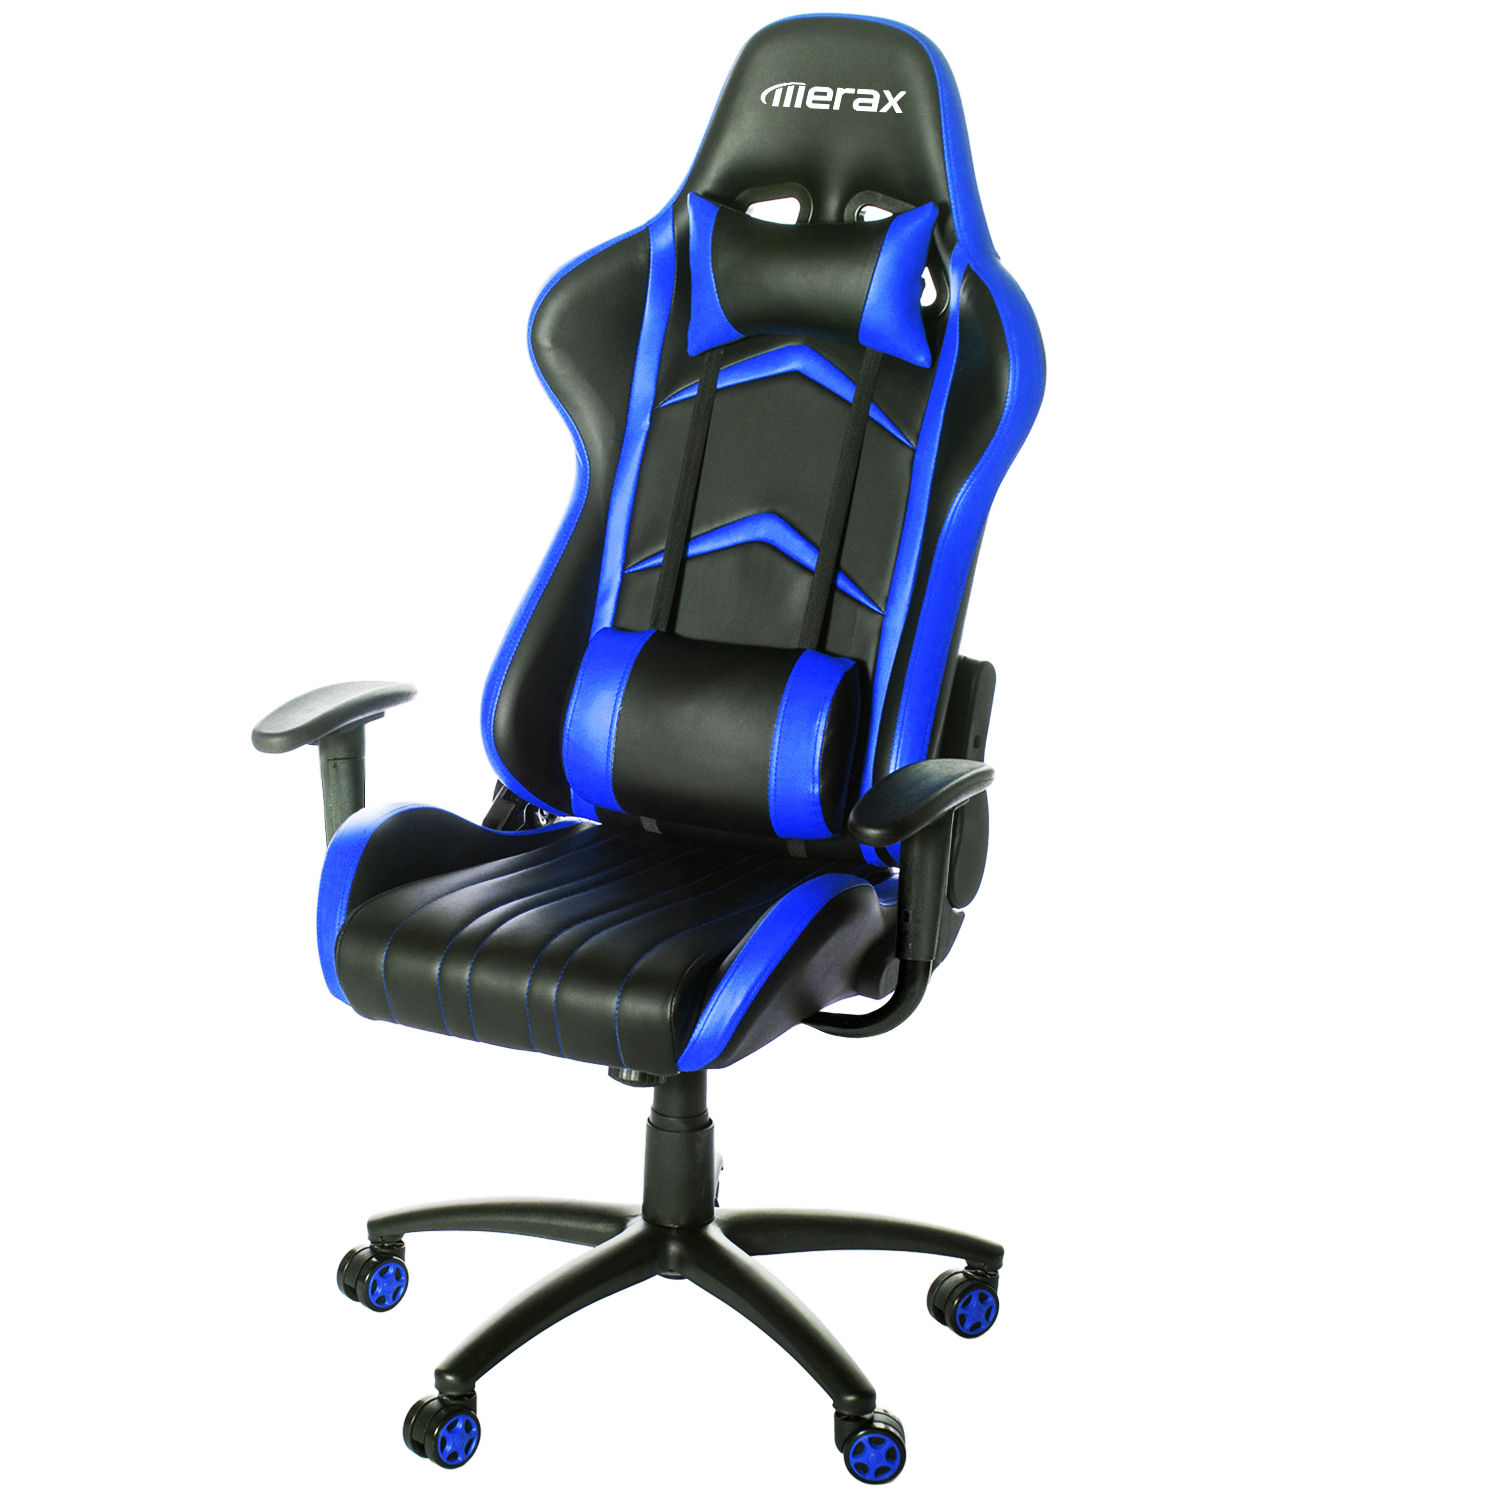 merax racing chair